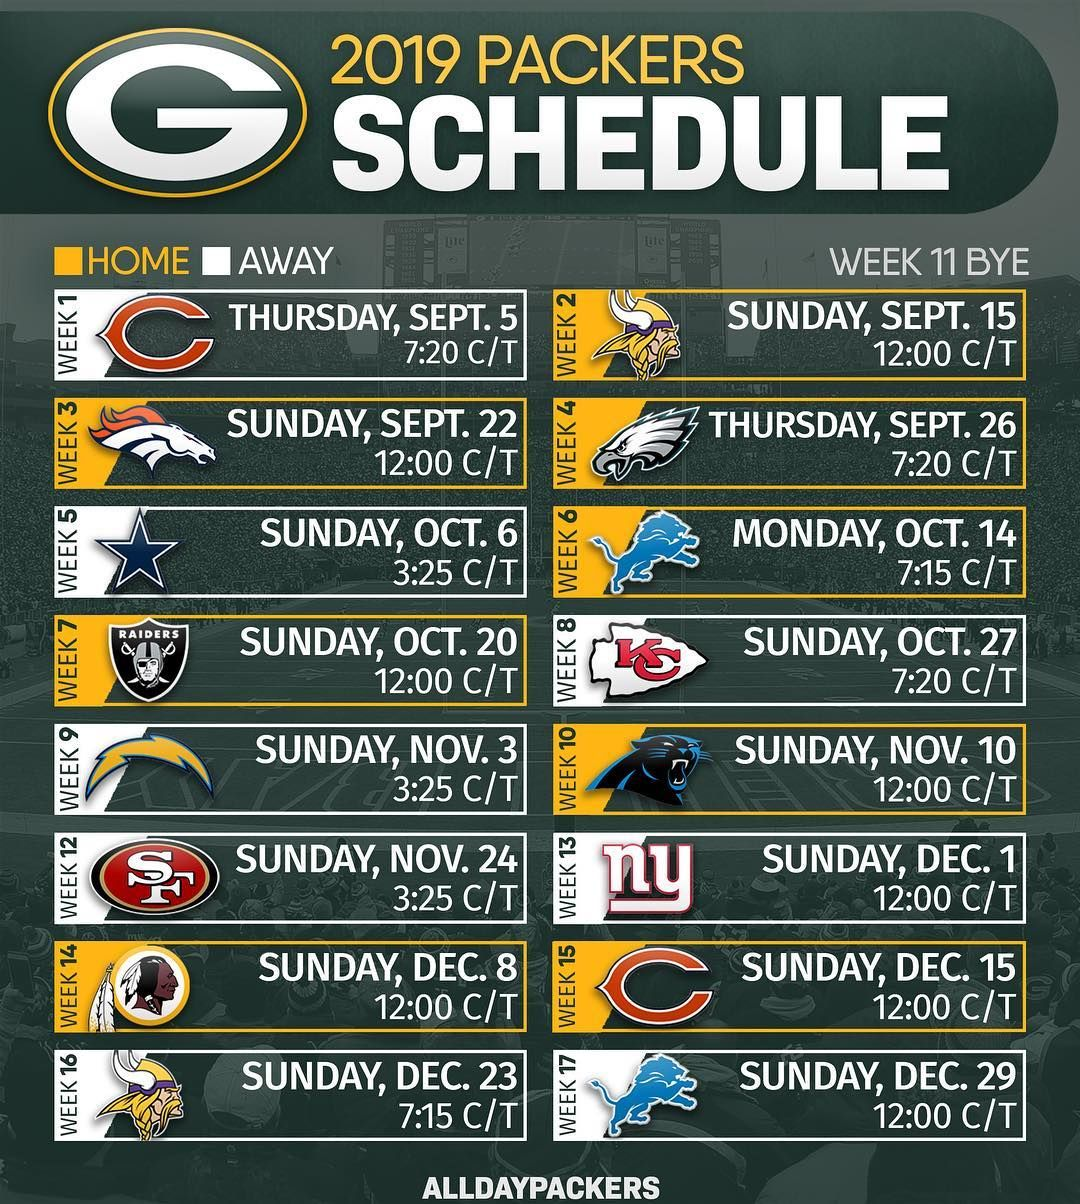 Green Bay Packers Coverage On Instagram The Official 2019 Schedule Has Been Released Early Rec Green Bay Packers Green Bay Packers Football Packers Schedule